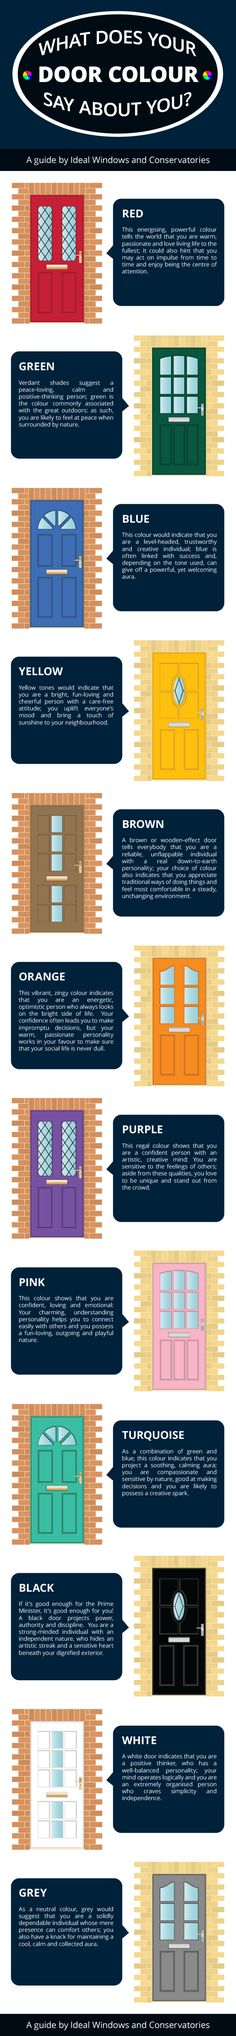 What Does Your Door Colour Say About You Personality?